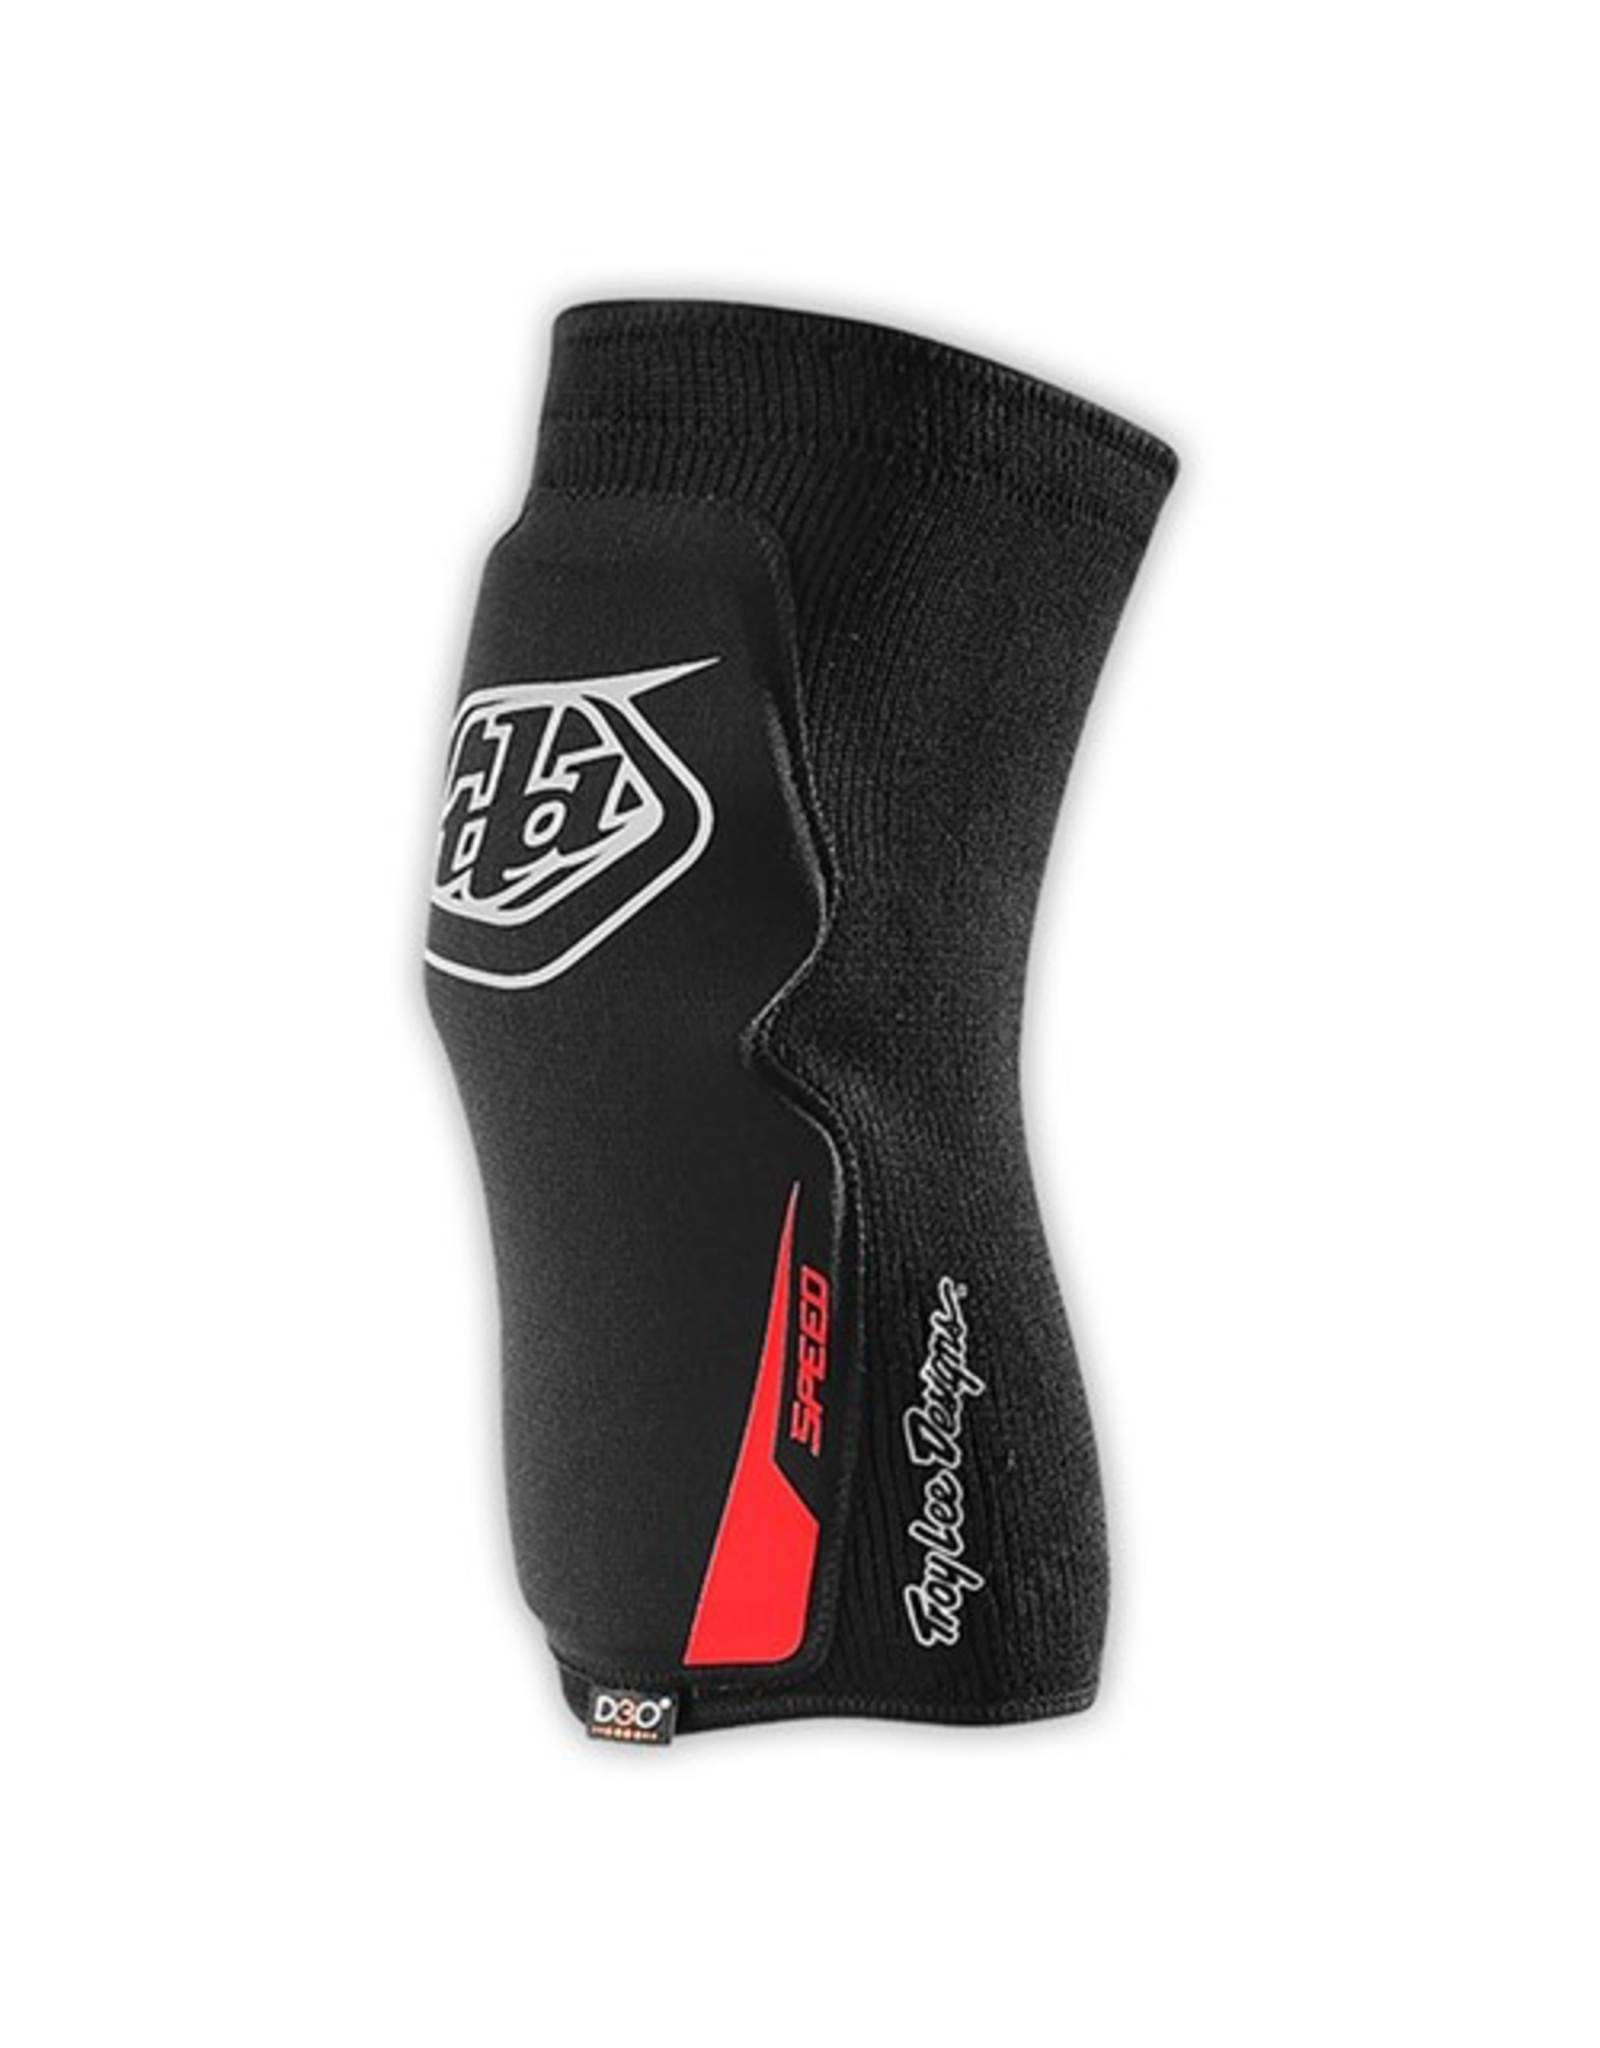 TROY LEE DESIGNS KNEE GUARD TLD YOUTH SPEED KNEE SLEEVE